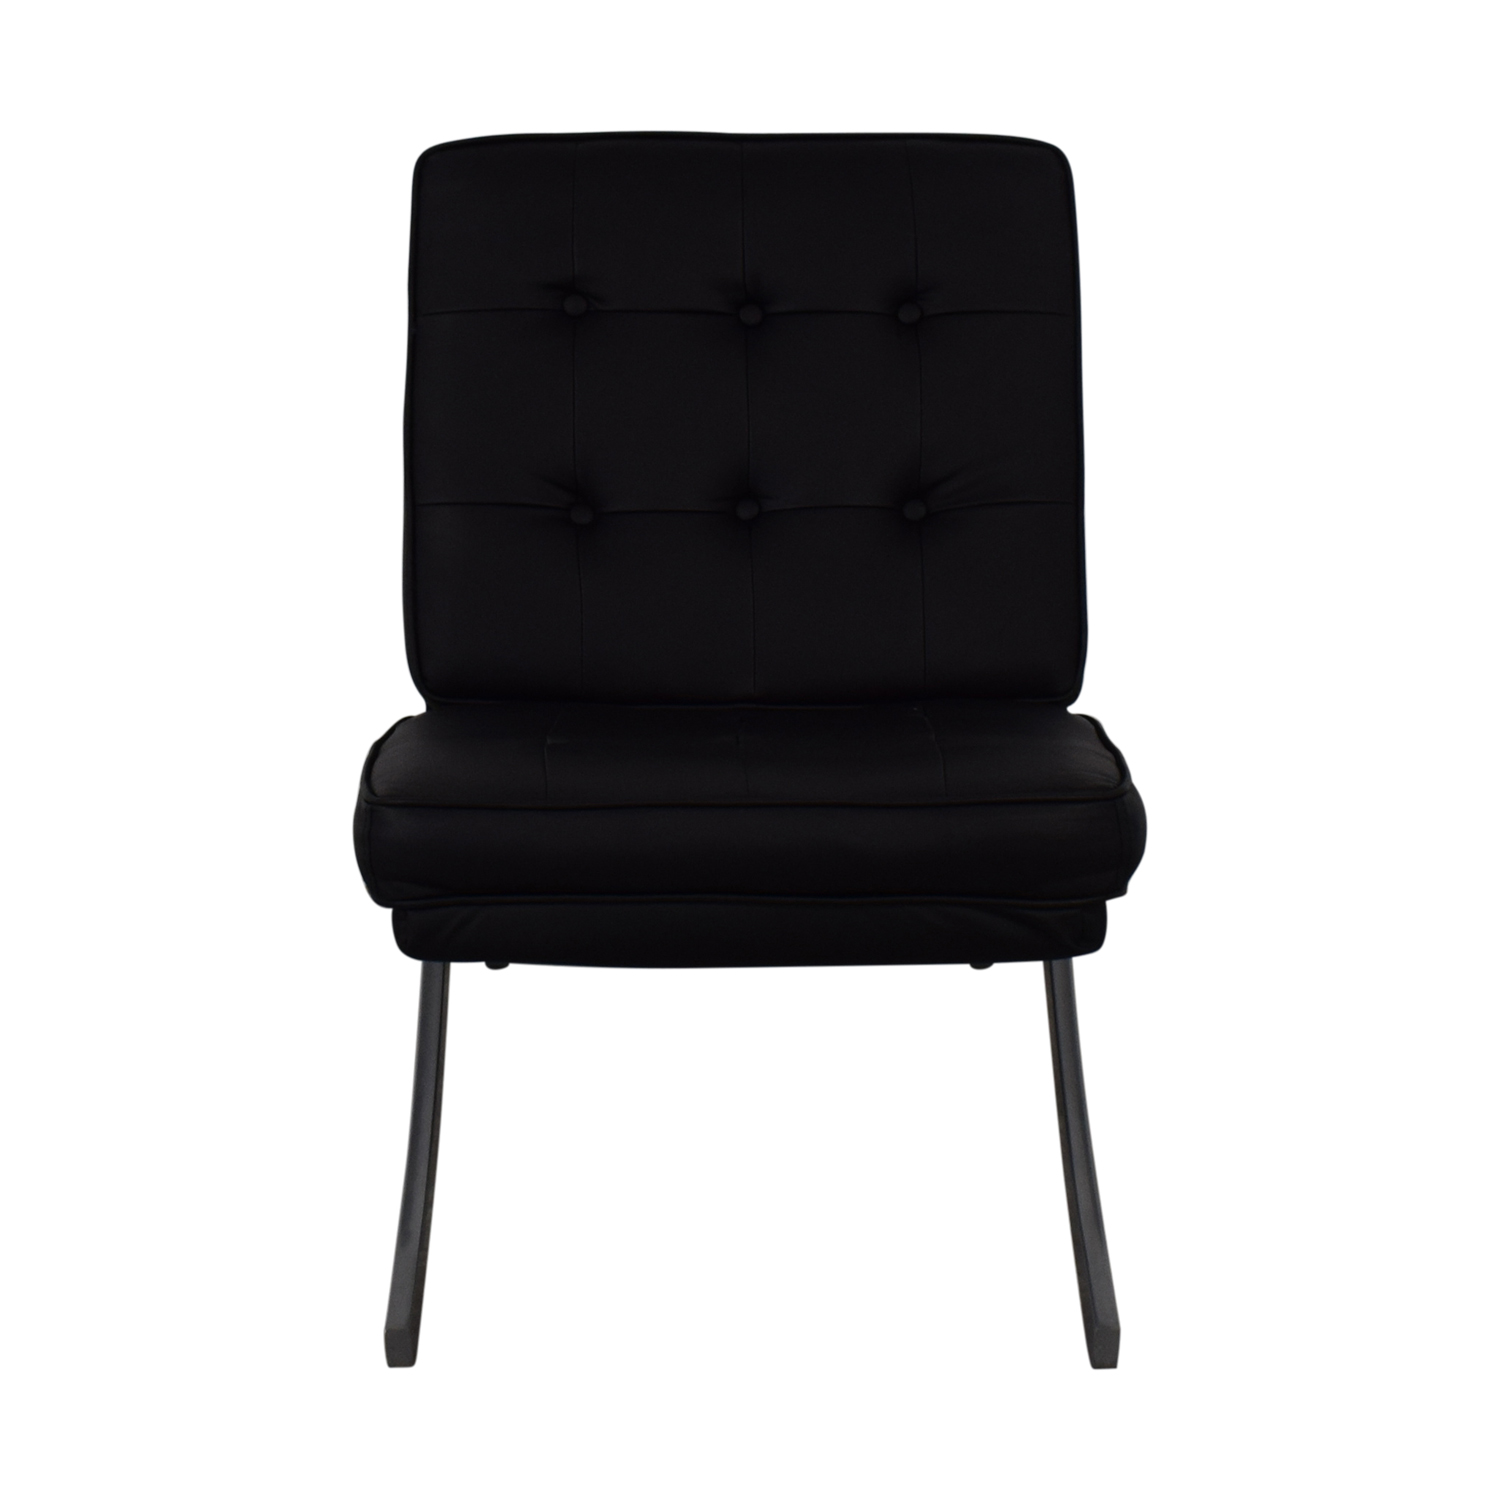 Raymour & Flanigan Black Accent Chair / Accent Chairs